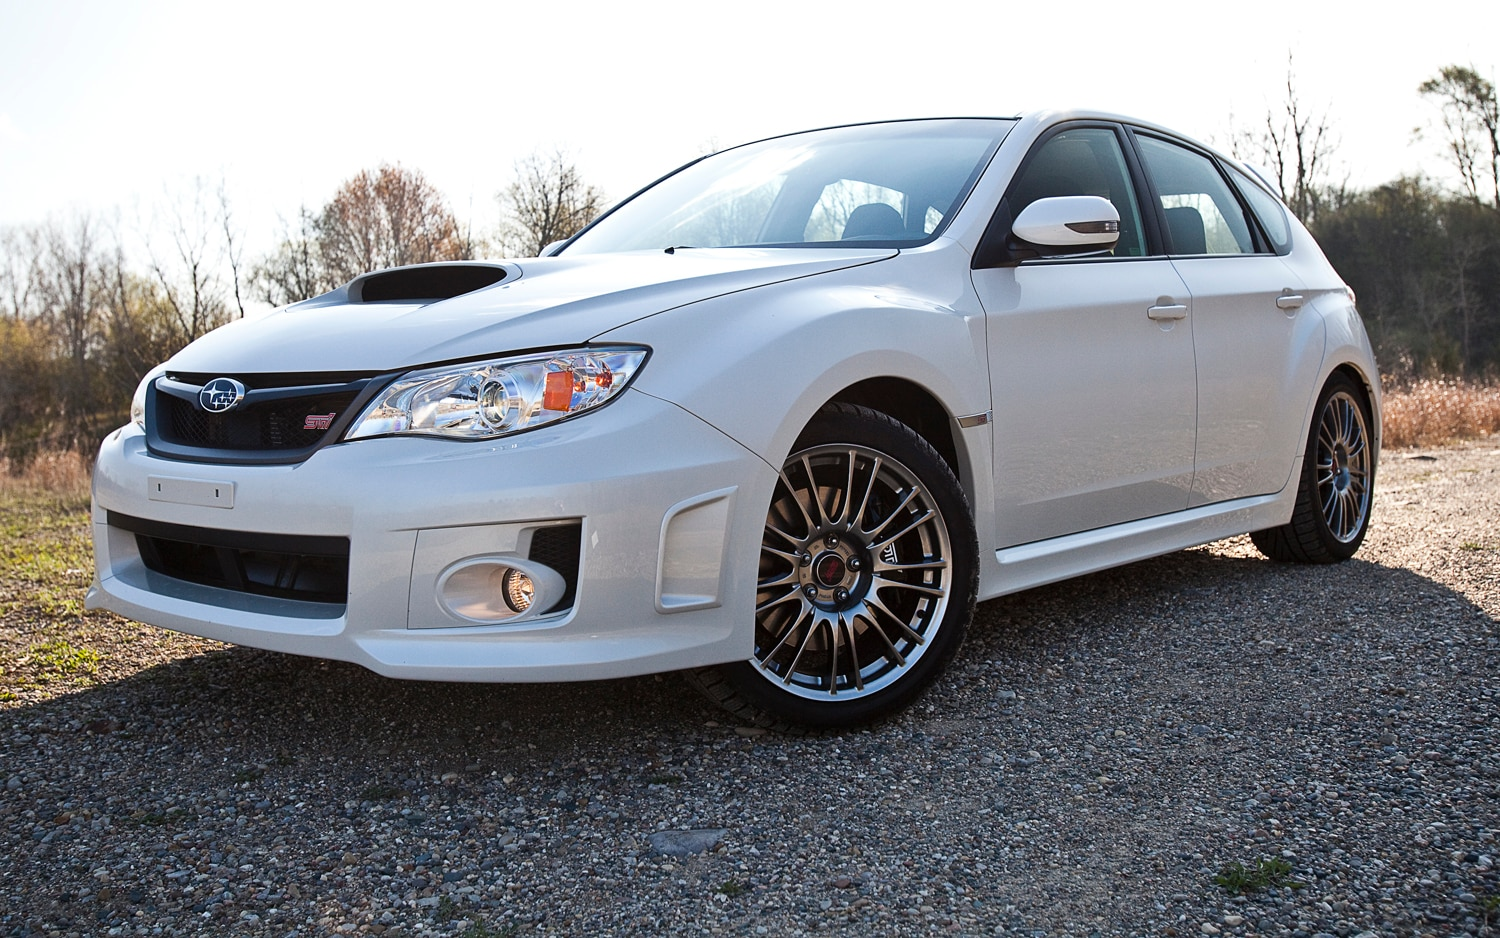 2012 subaru impreza wrx sti - editors' notebook - automobile magazine